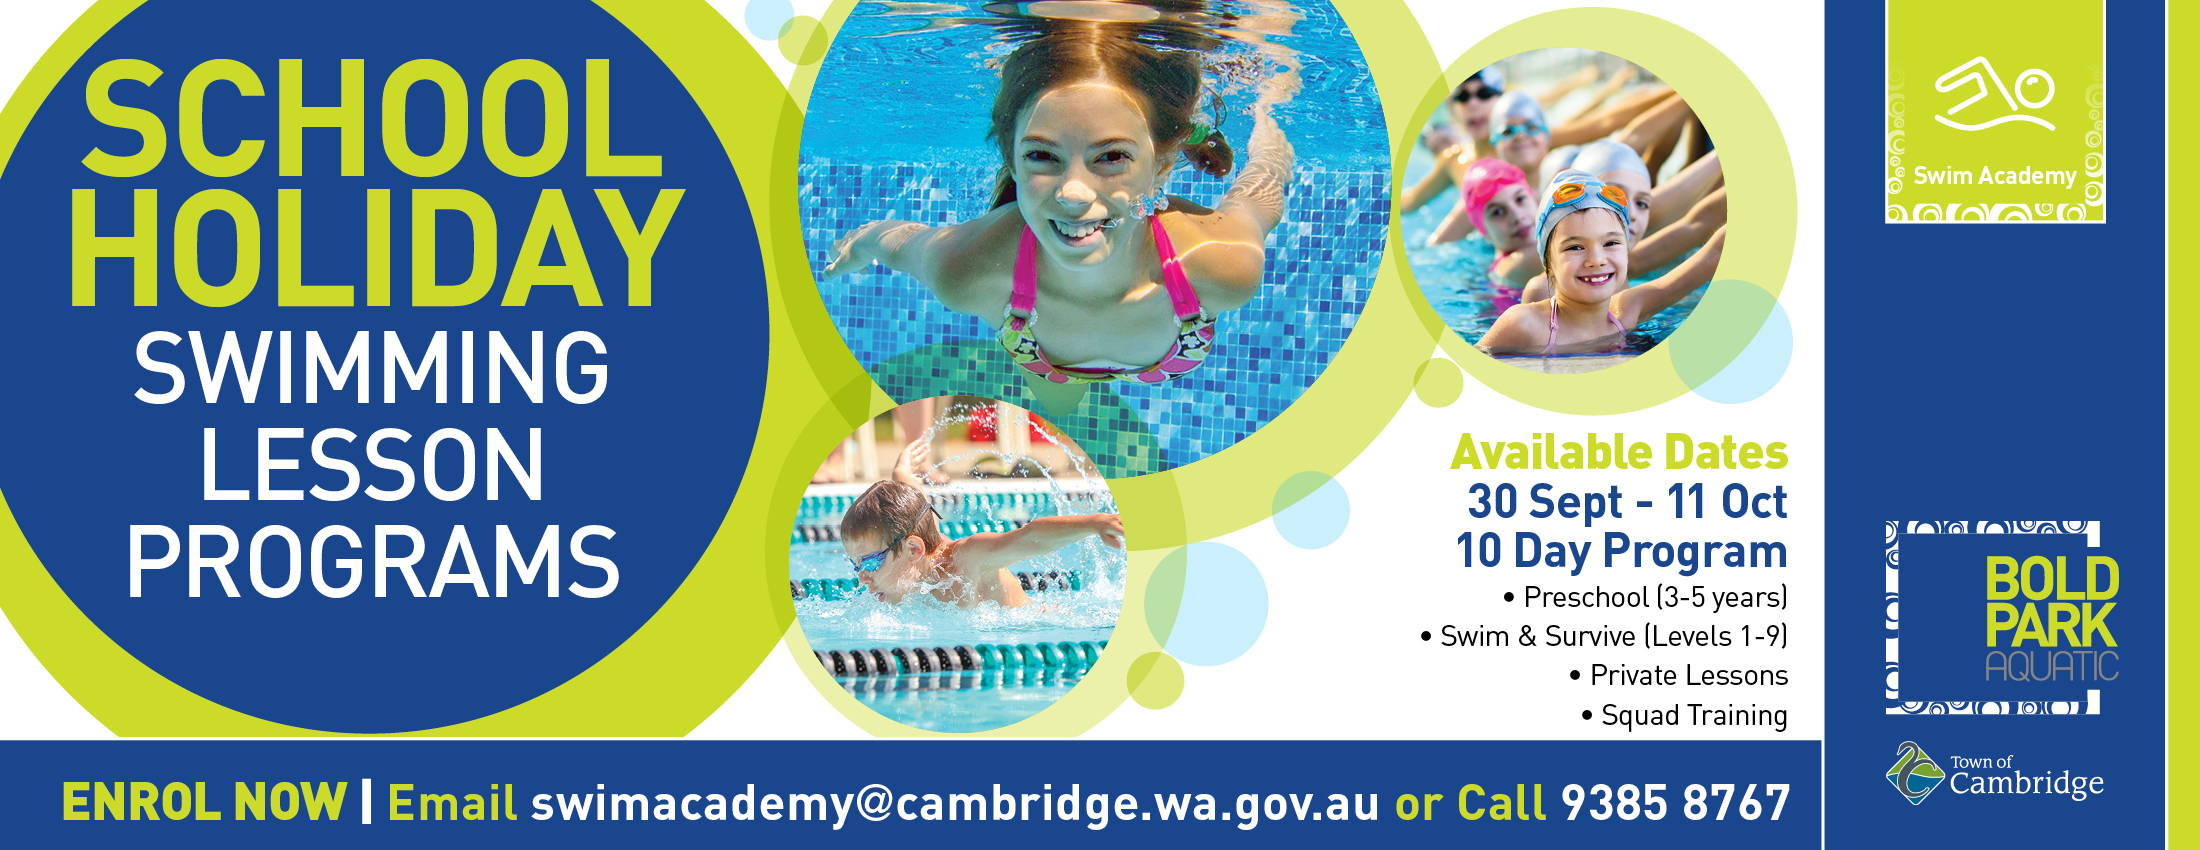 BPA-October-2019-Swim-Academy-Website-Banner_1.jpg